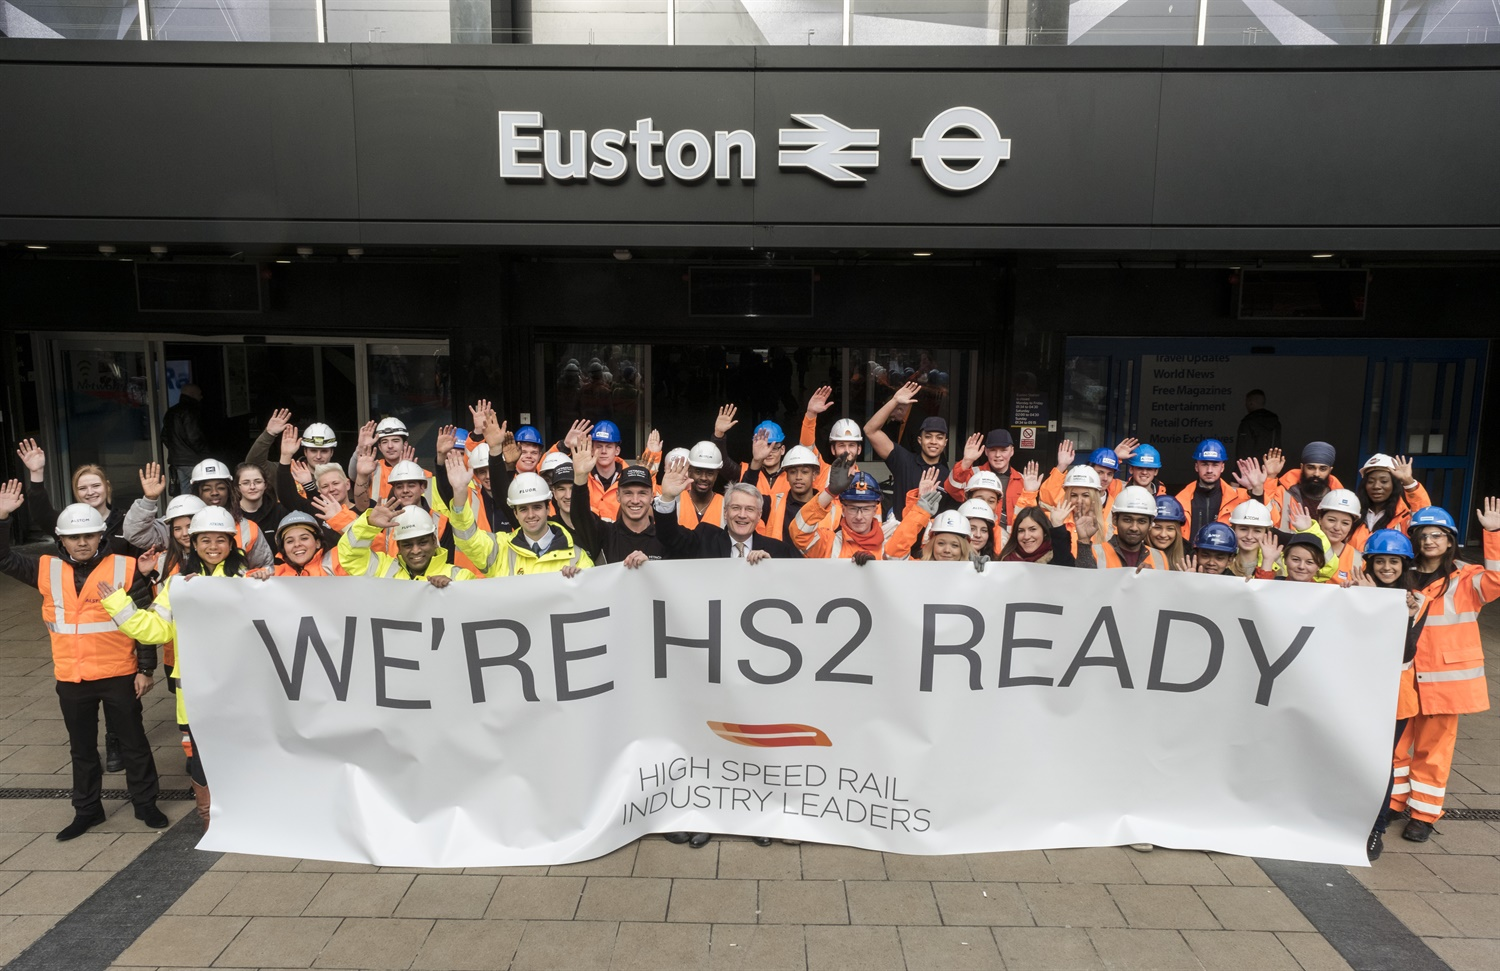 HS2 finally given green light in overwhelming Parliament vote